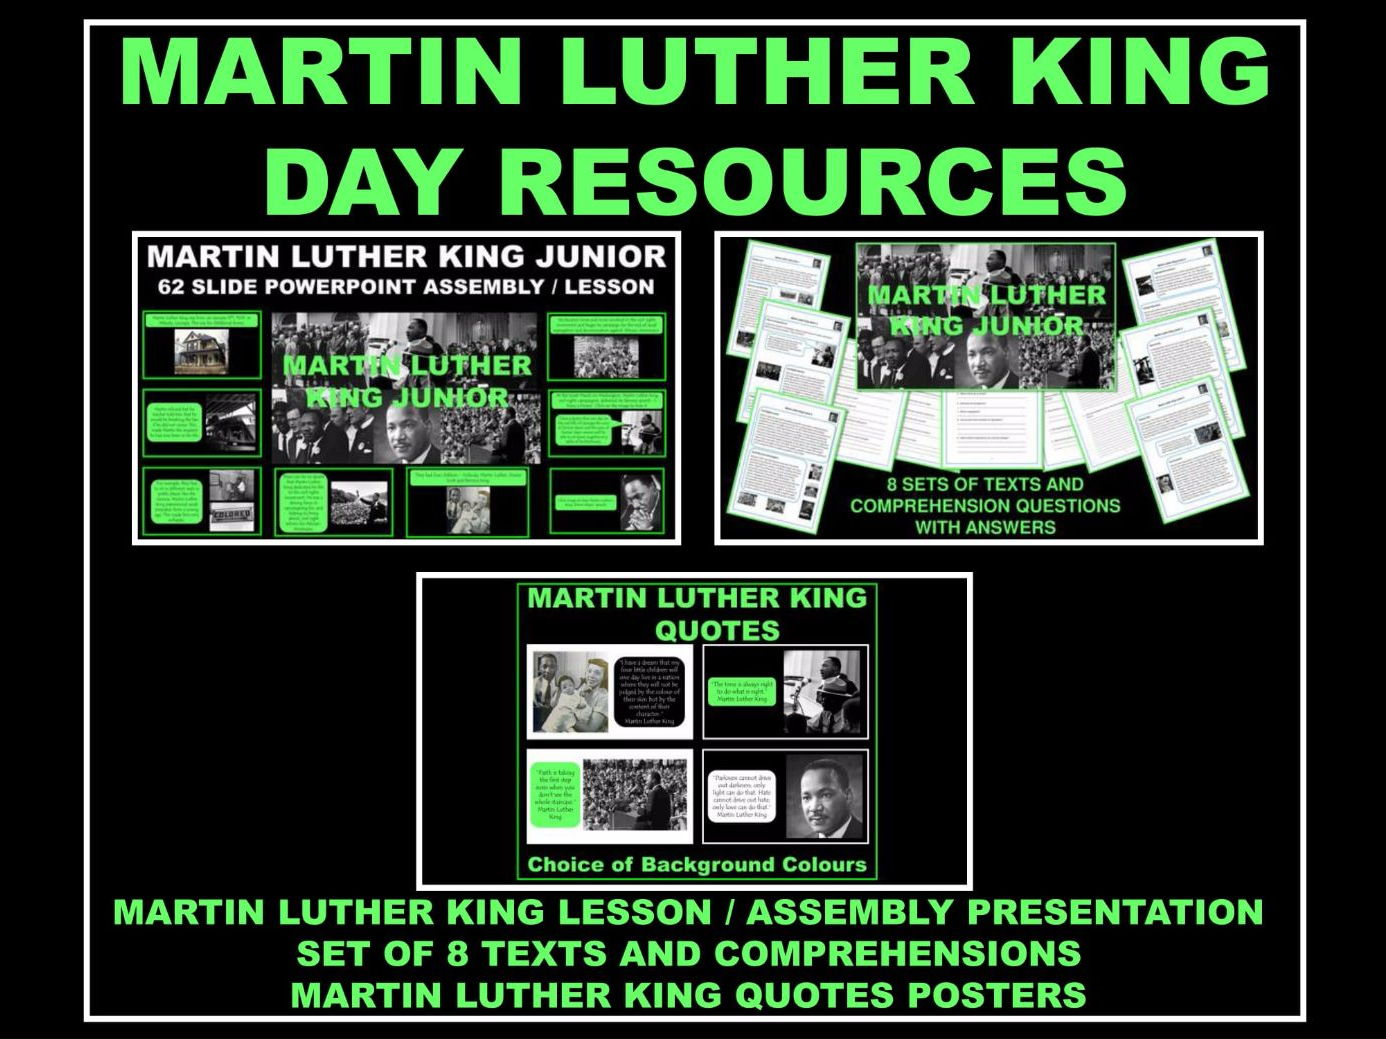 Martin Luther King Day Resources - PowerPoint Assembly / Lesson - Set of 8 Texts and Comprehensions - Martin Luther King Quotes Posters